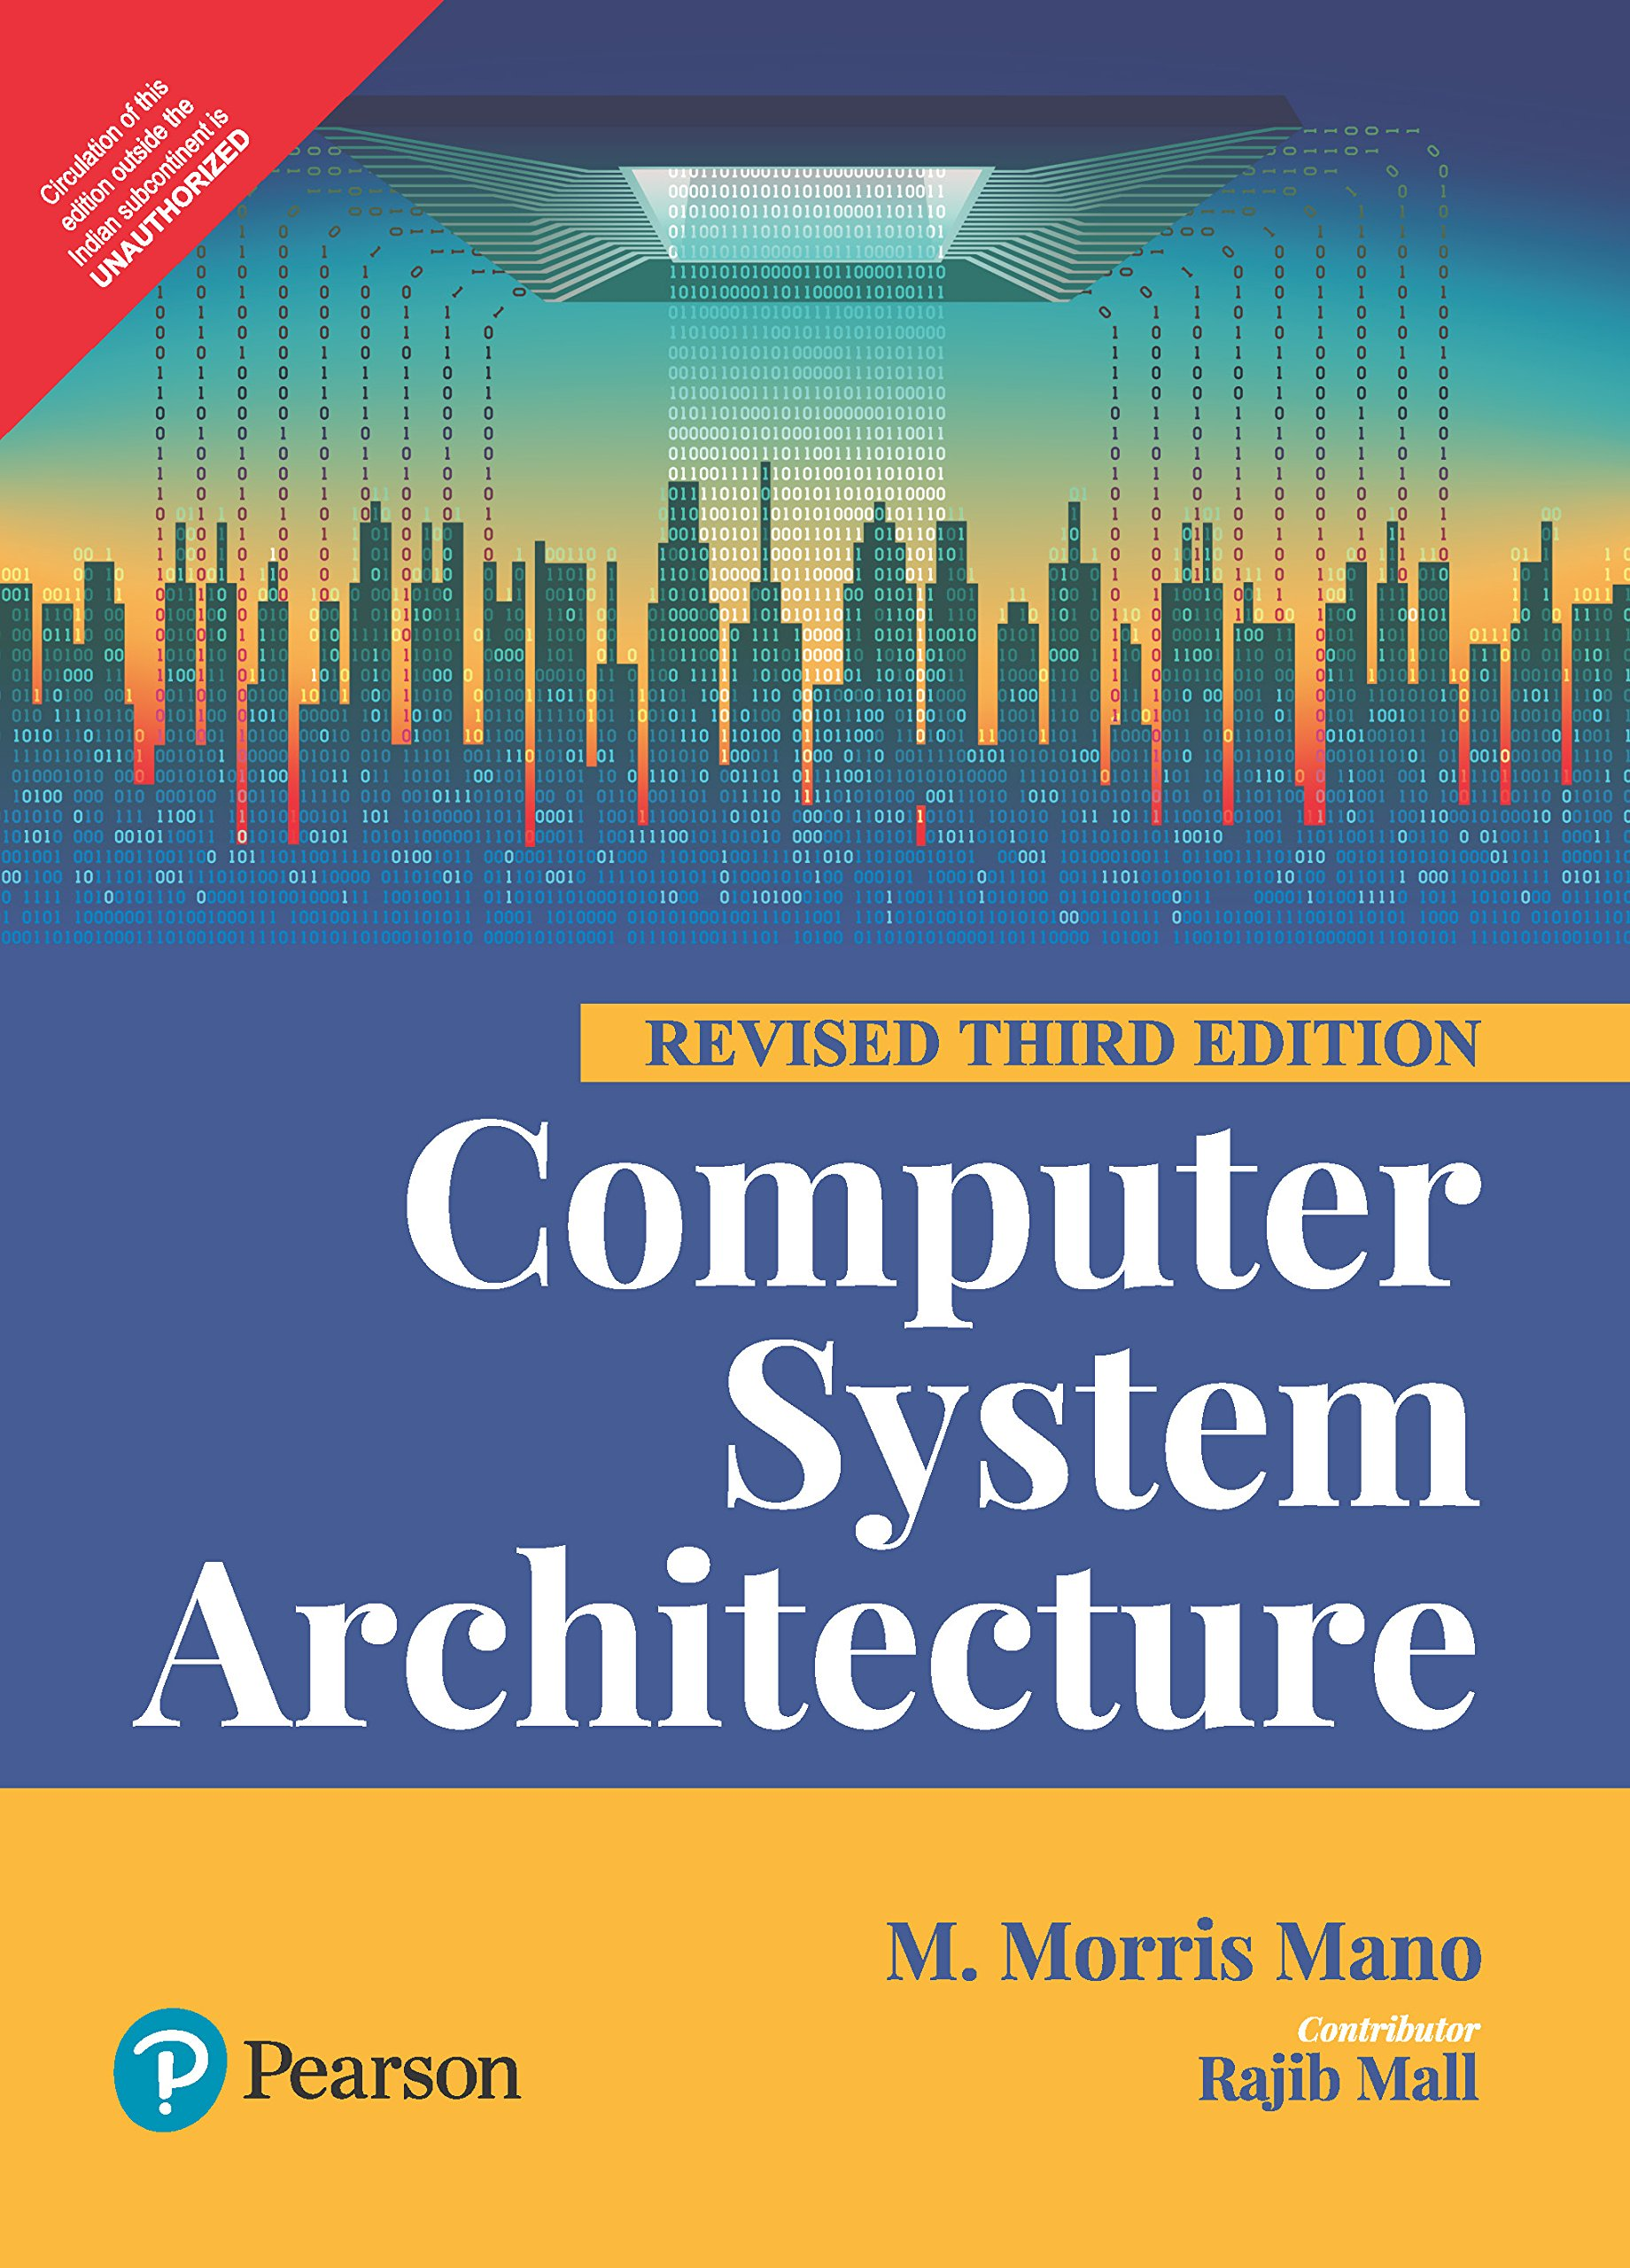 Pdf Computer System Architecture By Mano M Morris Book Free Download Easyengineering